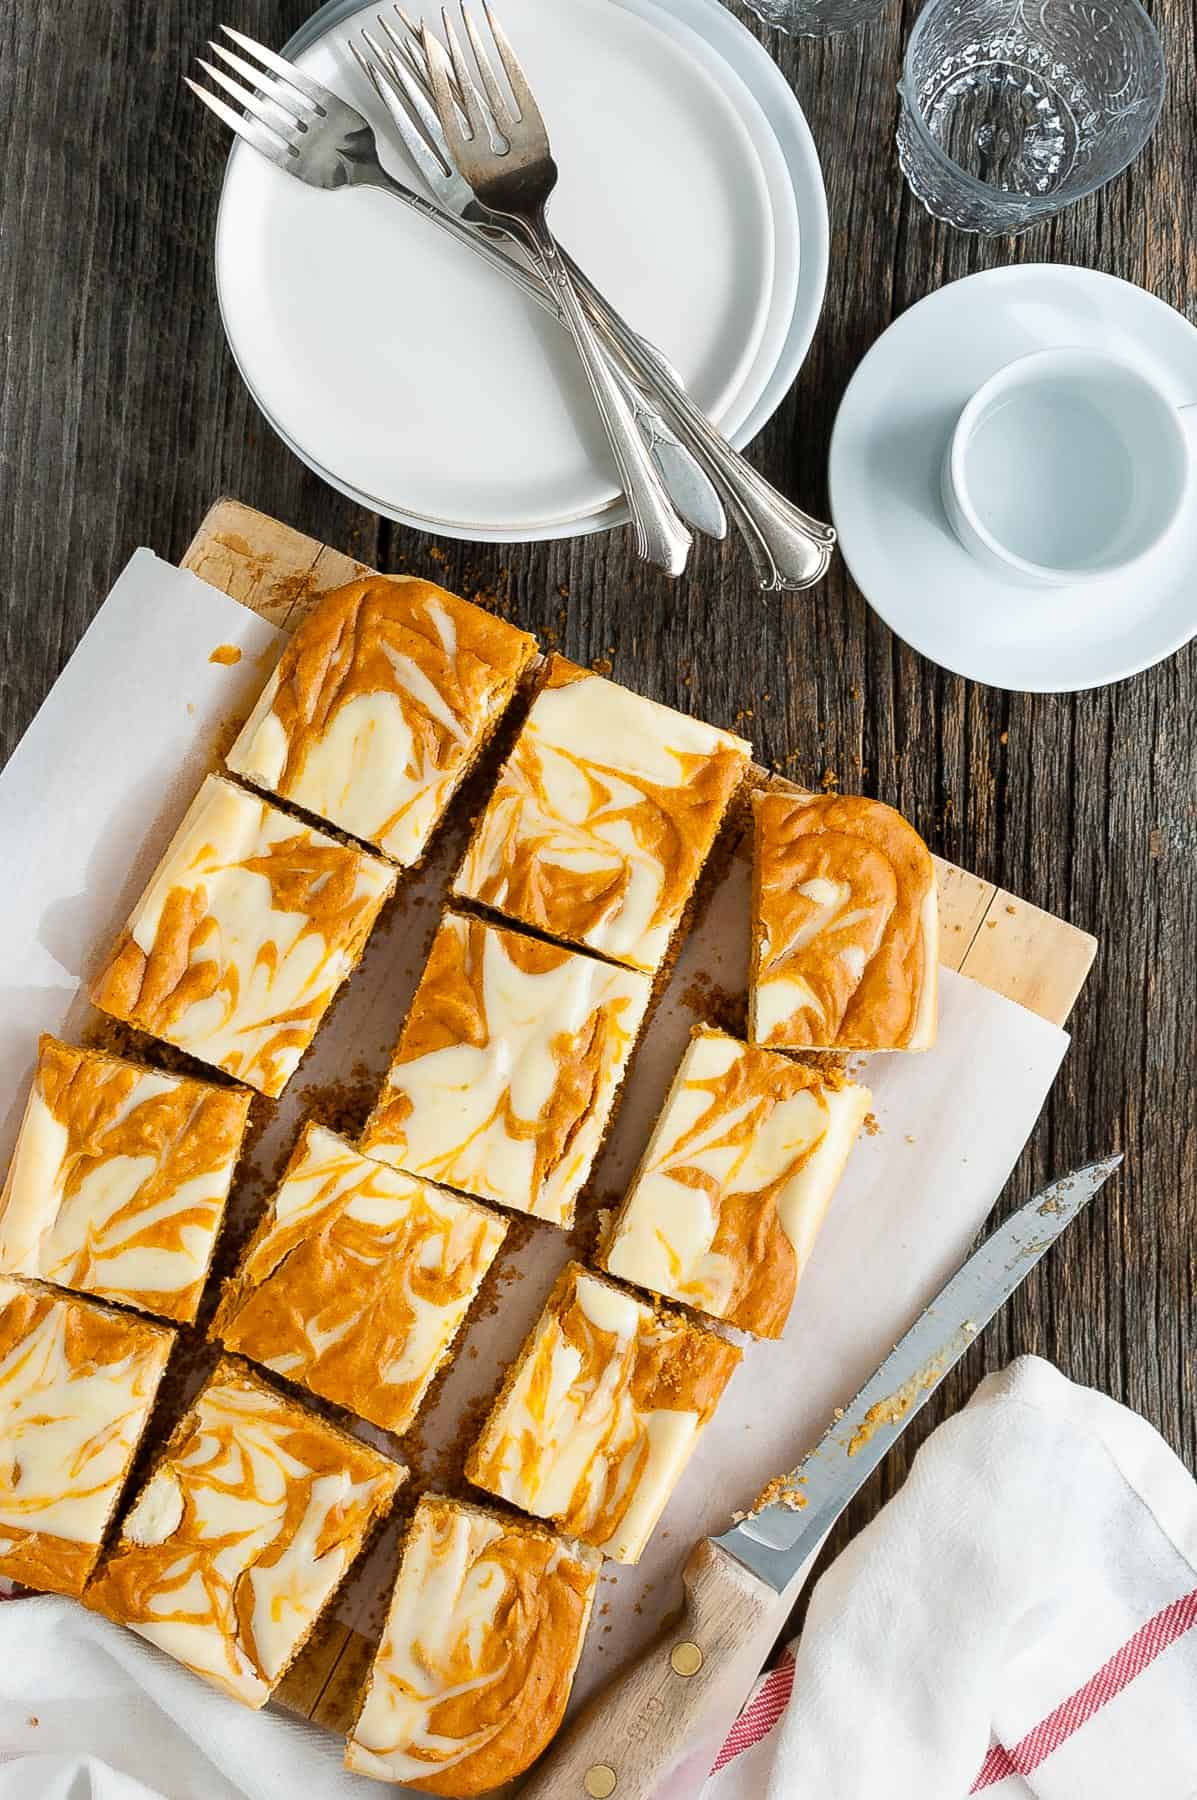 Several slices of marbled pumpkin cheesecake bars on a serving board.